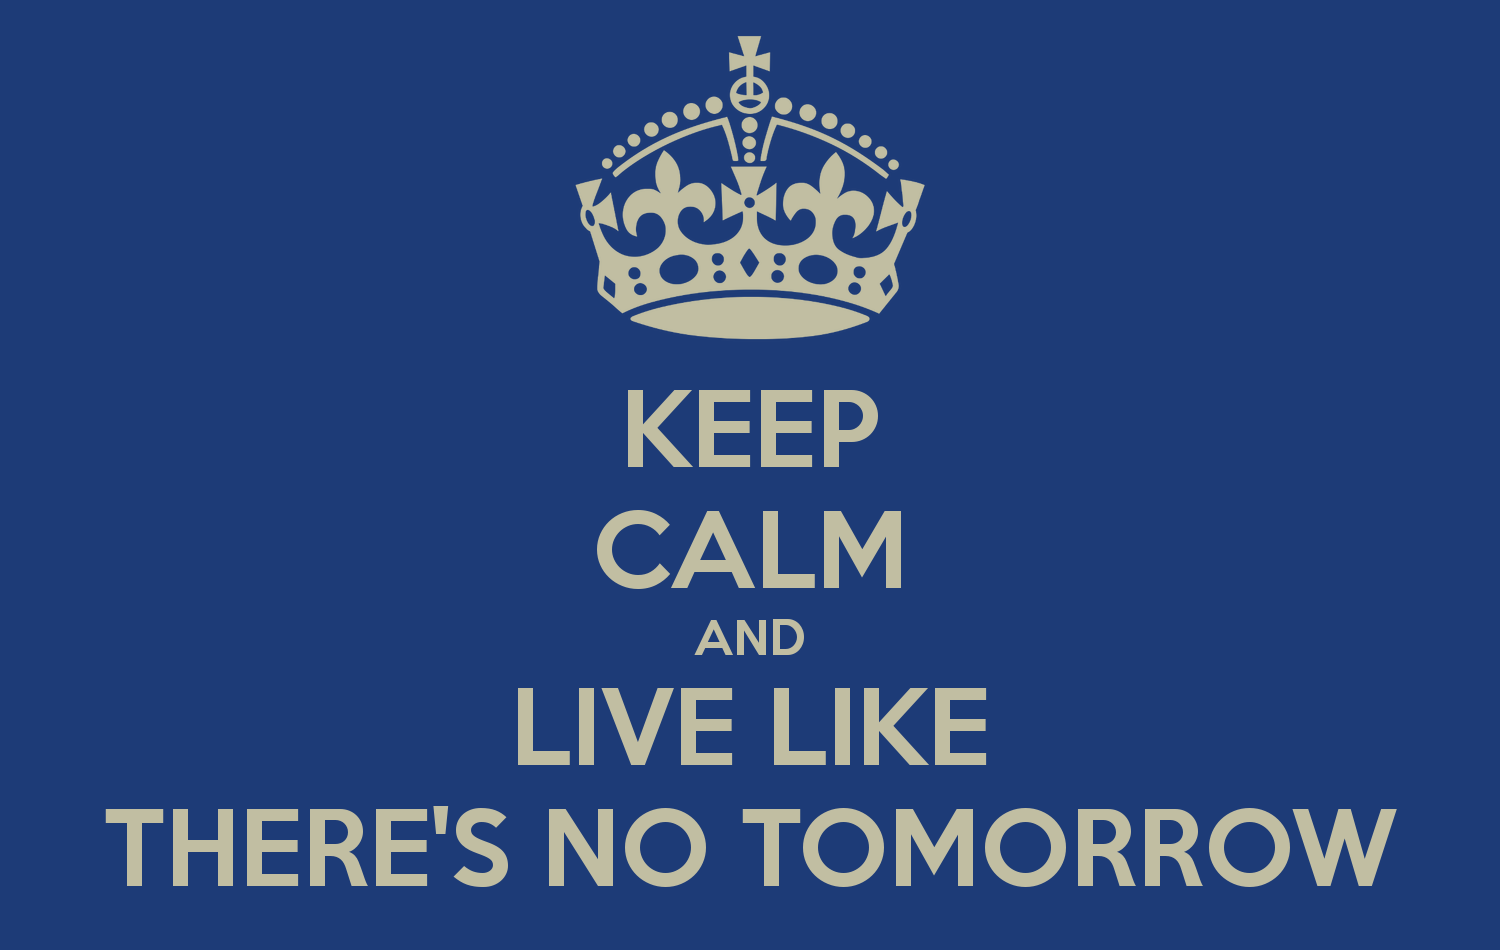 keep-calm-and-live-like-there-s-no-tomorrow-5.png